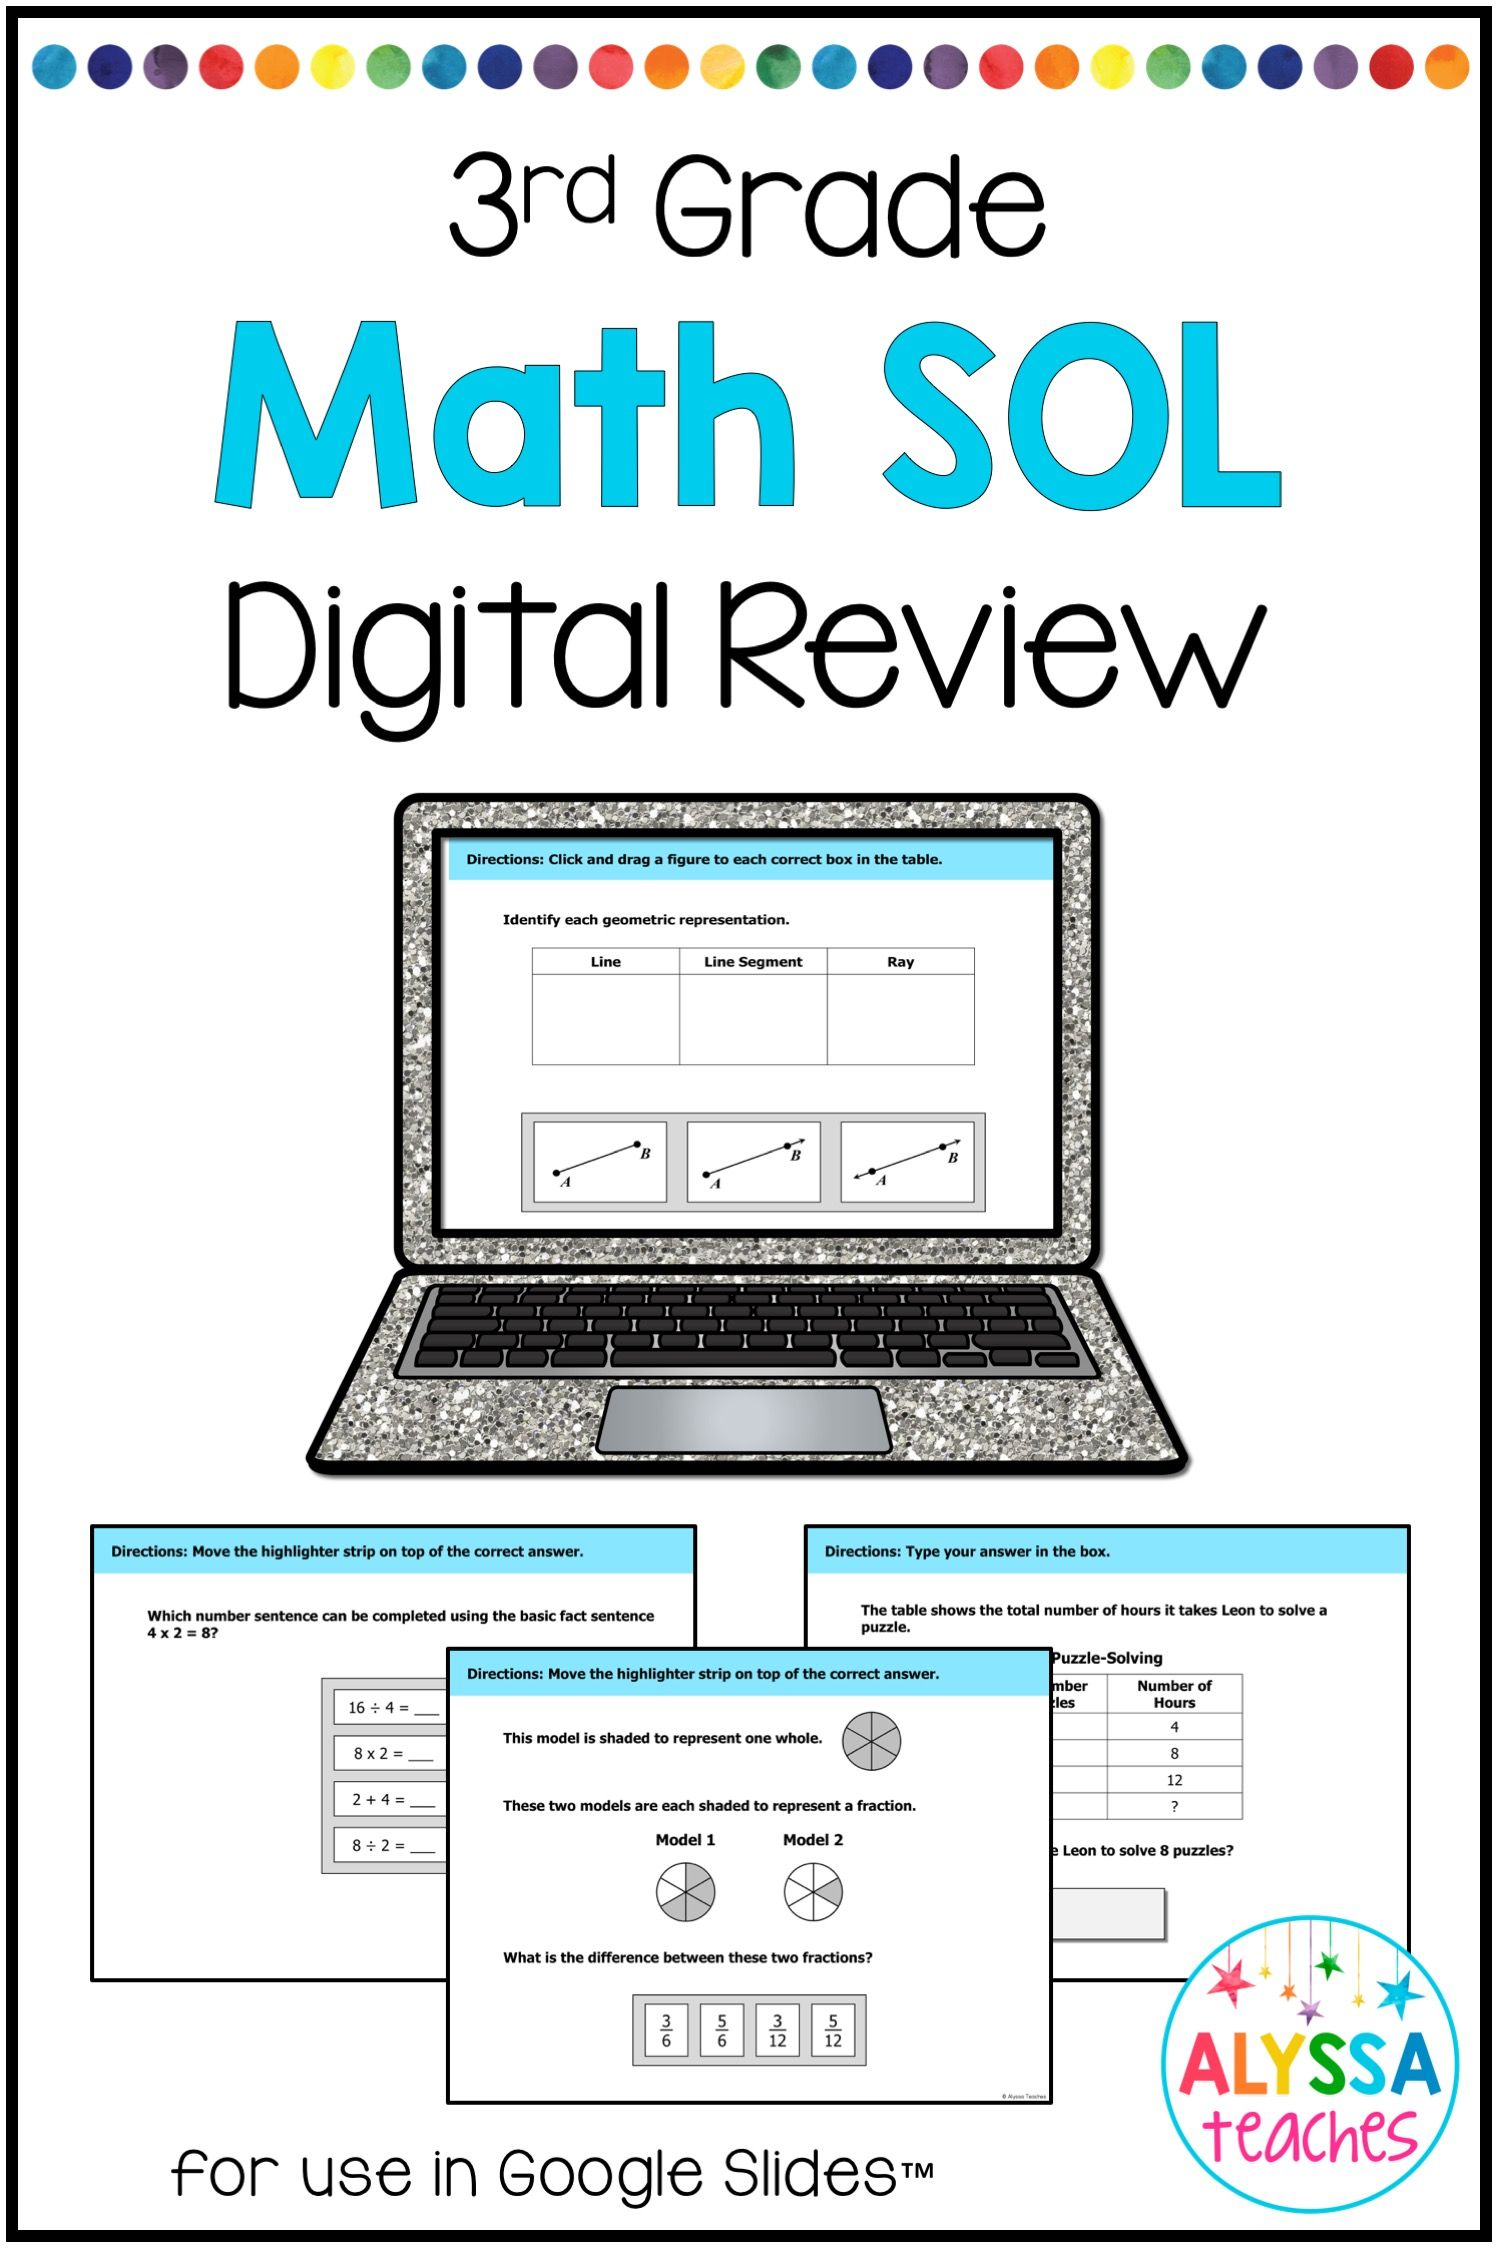 Third Grade Math Sol Tei Questions Digital Review